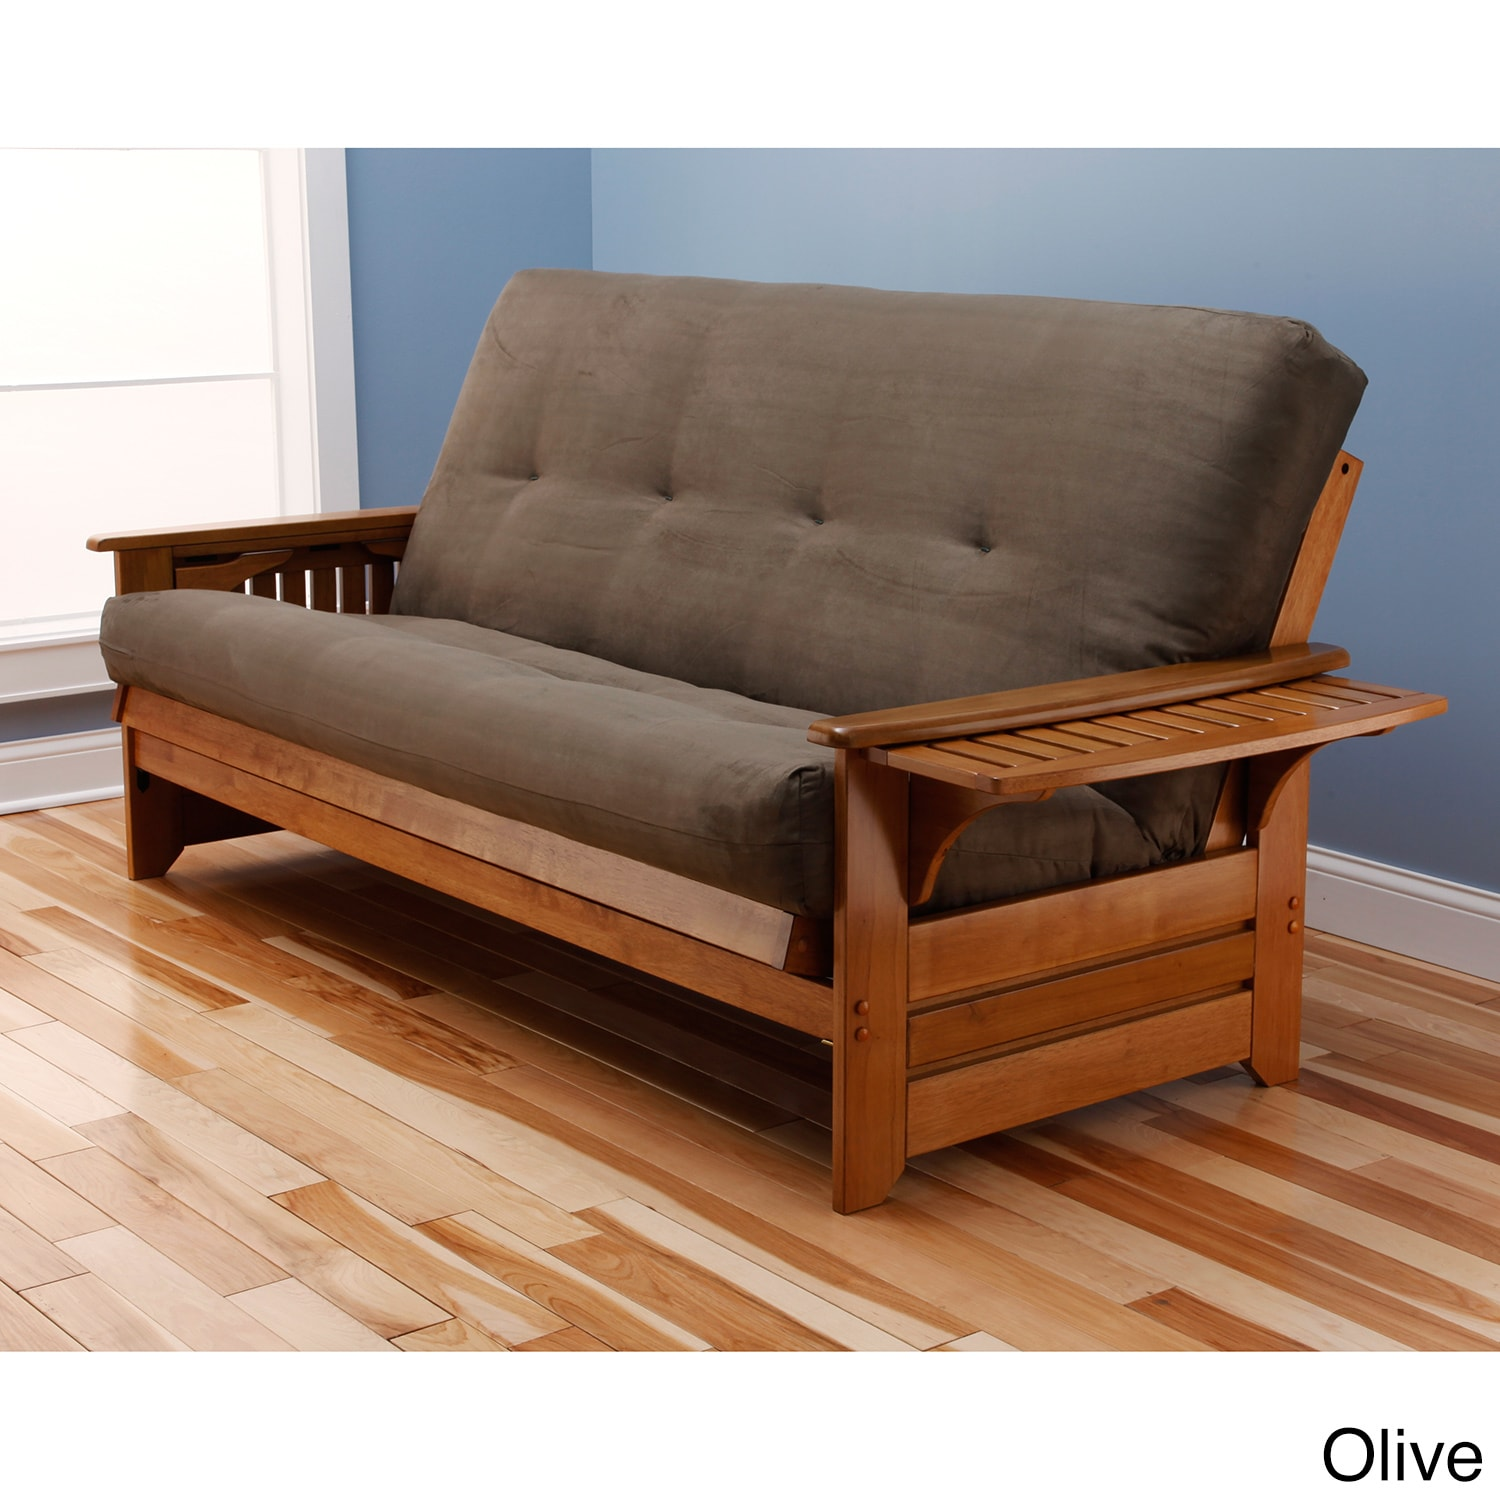 Wooden futon frame replacement parts world of futons for World of futons ebay